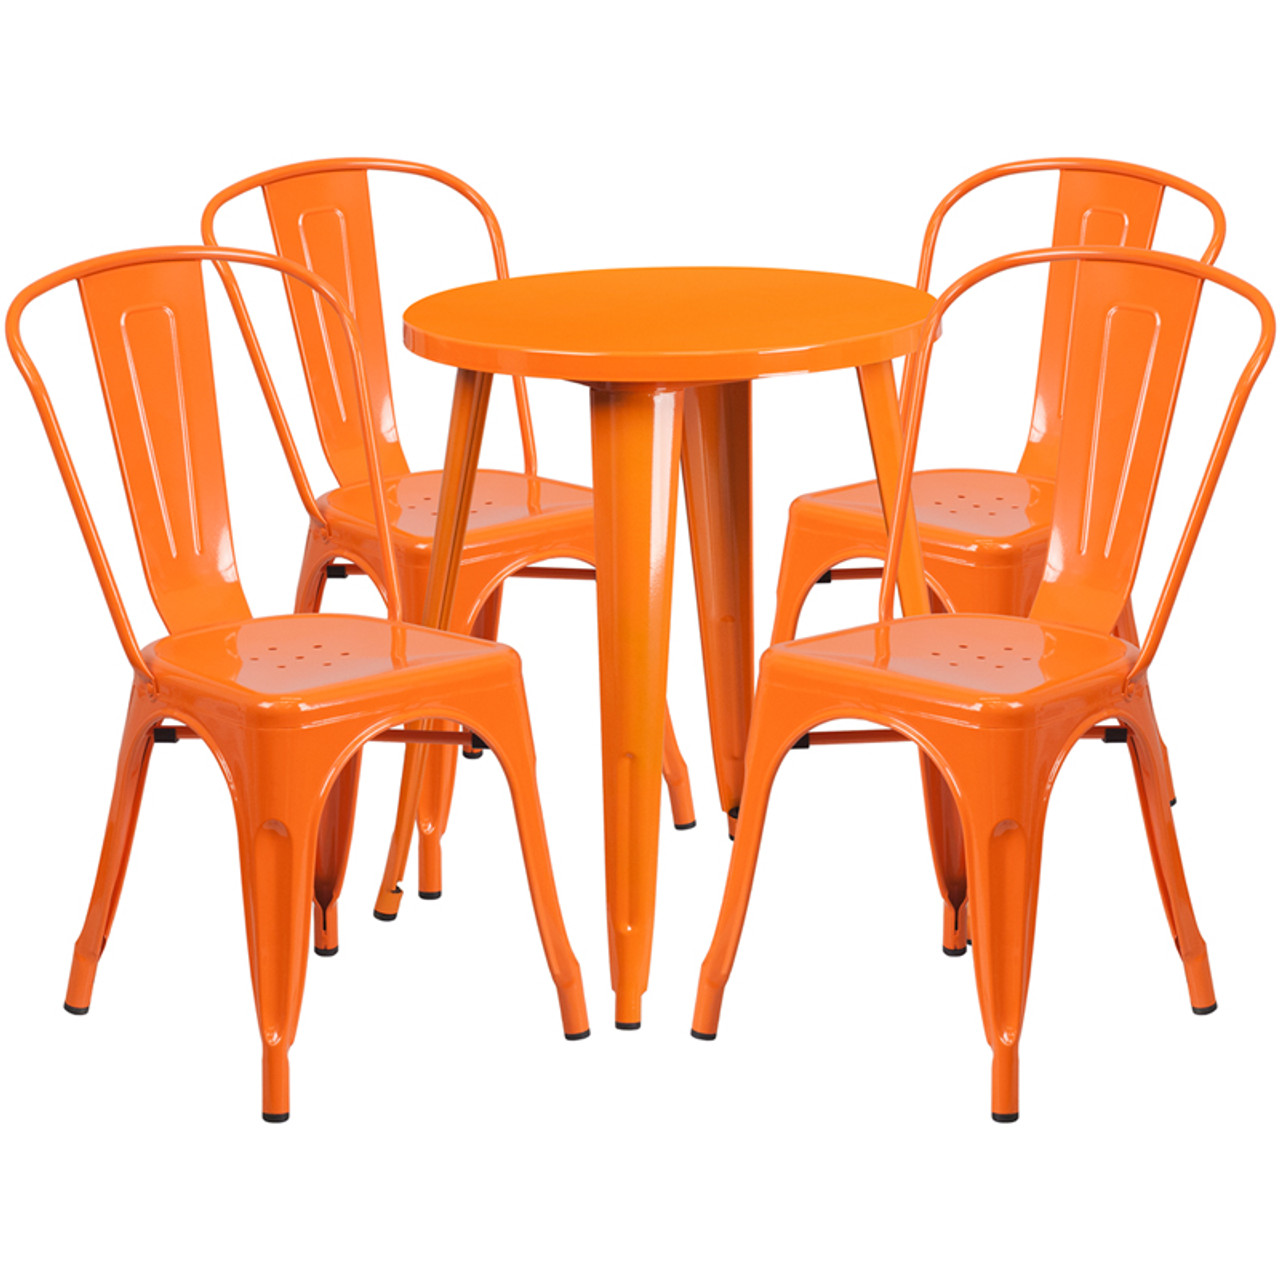 ... Indoor/Outdoor Cafe Metal 5 Piece set- 24  Round Table with 4 Stack ...  sc 1 st  FoldingChairsandTables.com & Indoor/Outdoor Cafe Metal 5 Piece set- 24